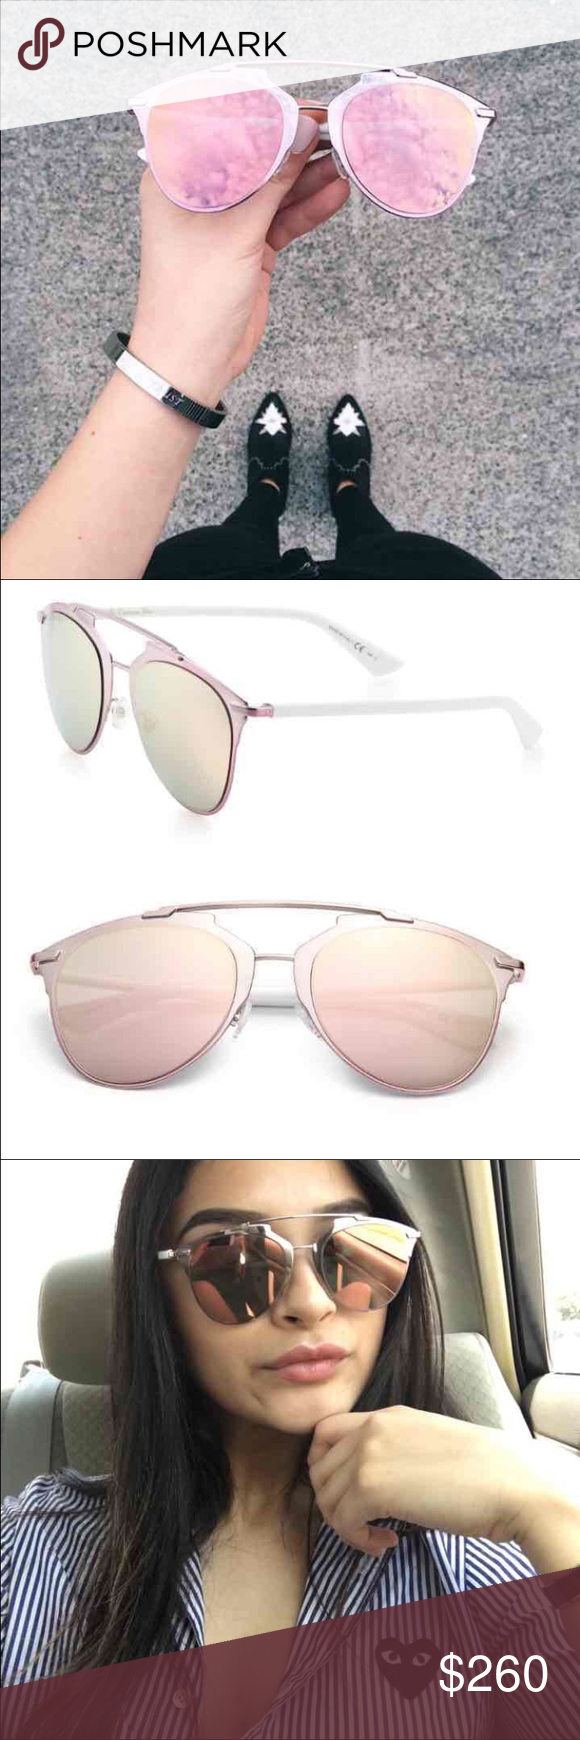 d18dd632c4e Pink Christian Dior reflected sunglasses Authentic pair